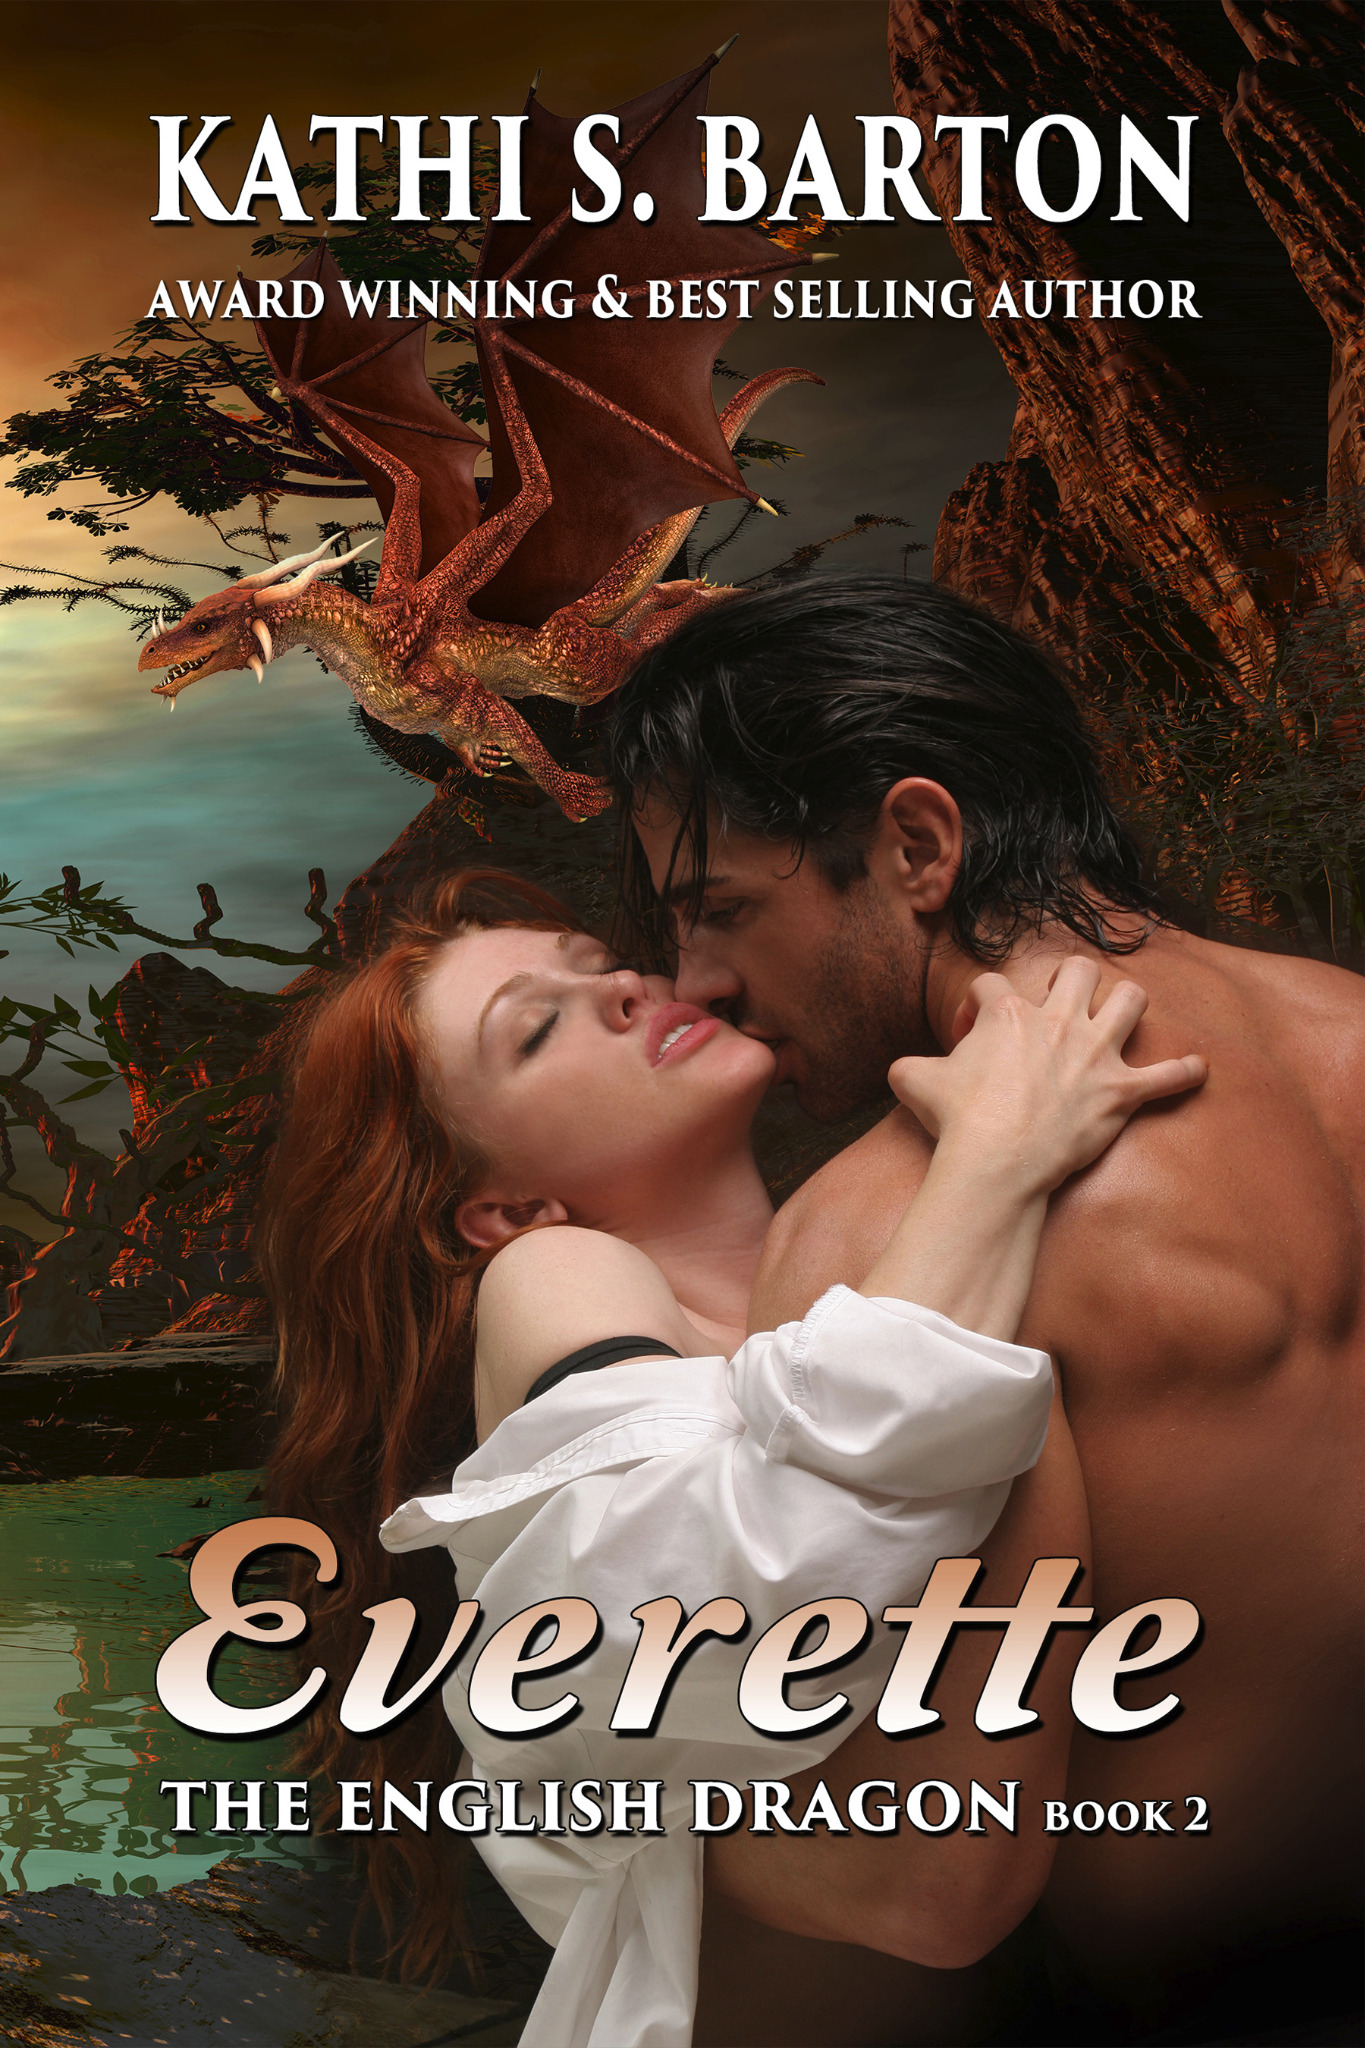 Everette - The English Dragon Book 2